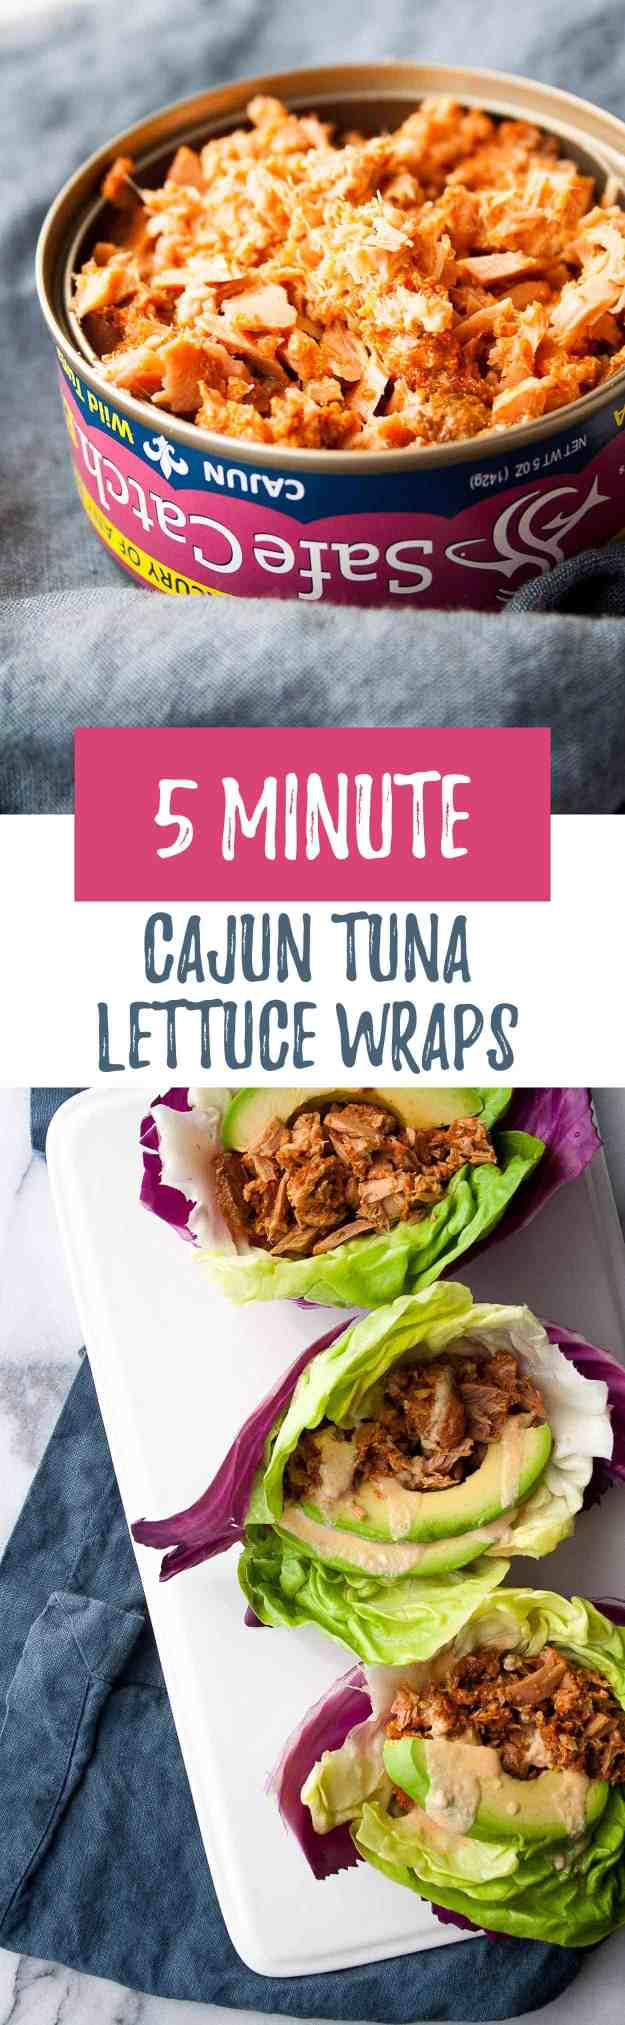 5-Minute Cajun Tuna Lettuce Wraps | ad, Safe Catch, canned tuna, easy, healthy, to-go, spicy, lettuce, cabbage | hungrybynature.com